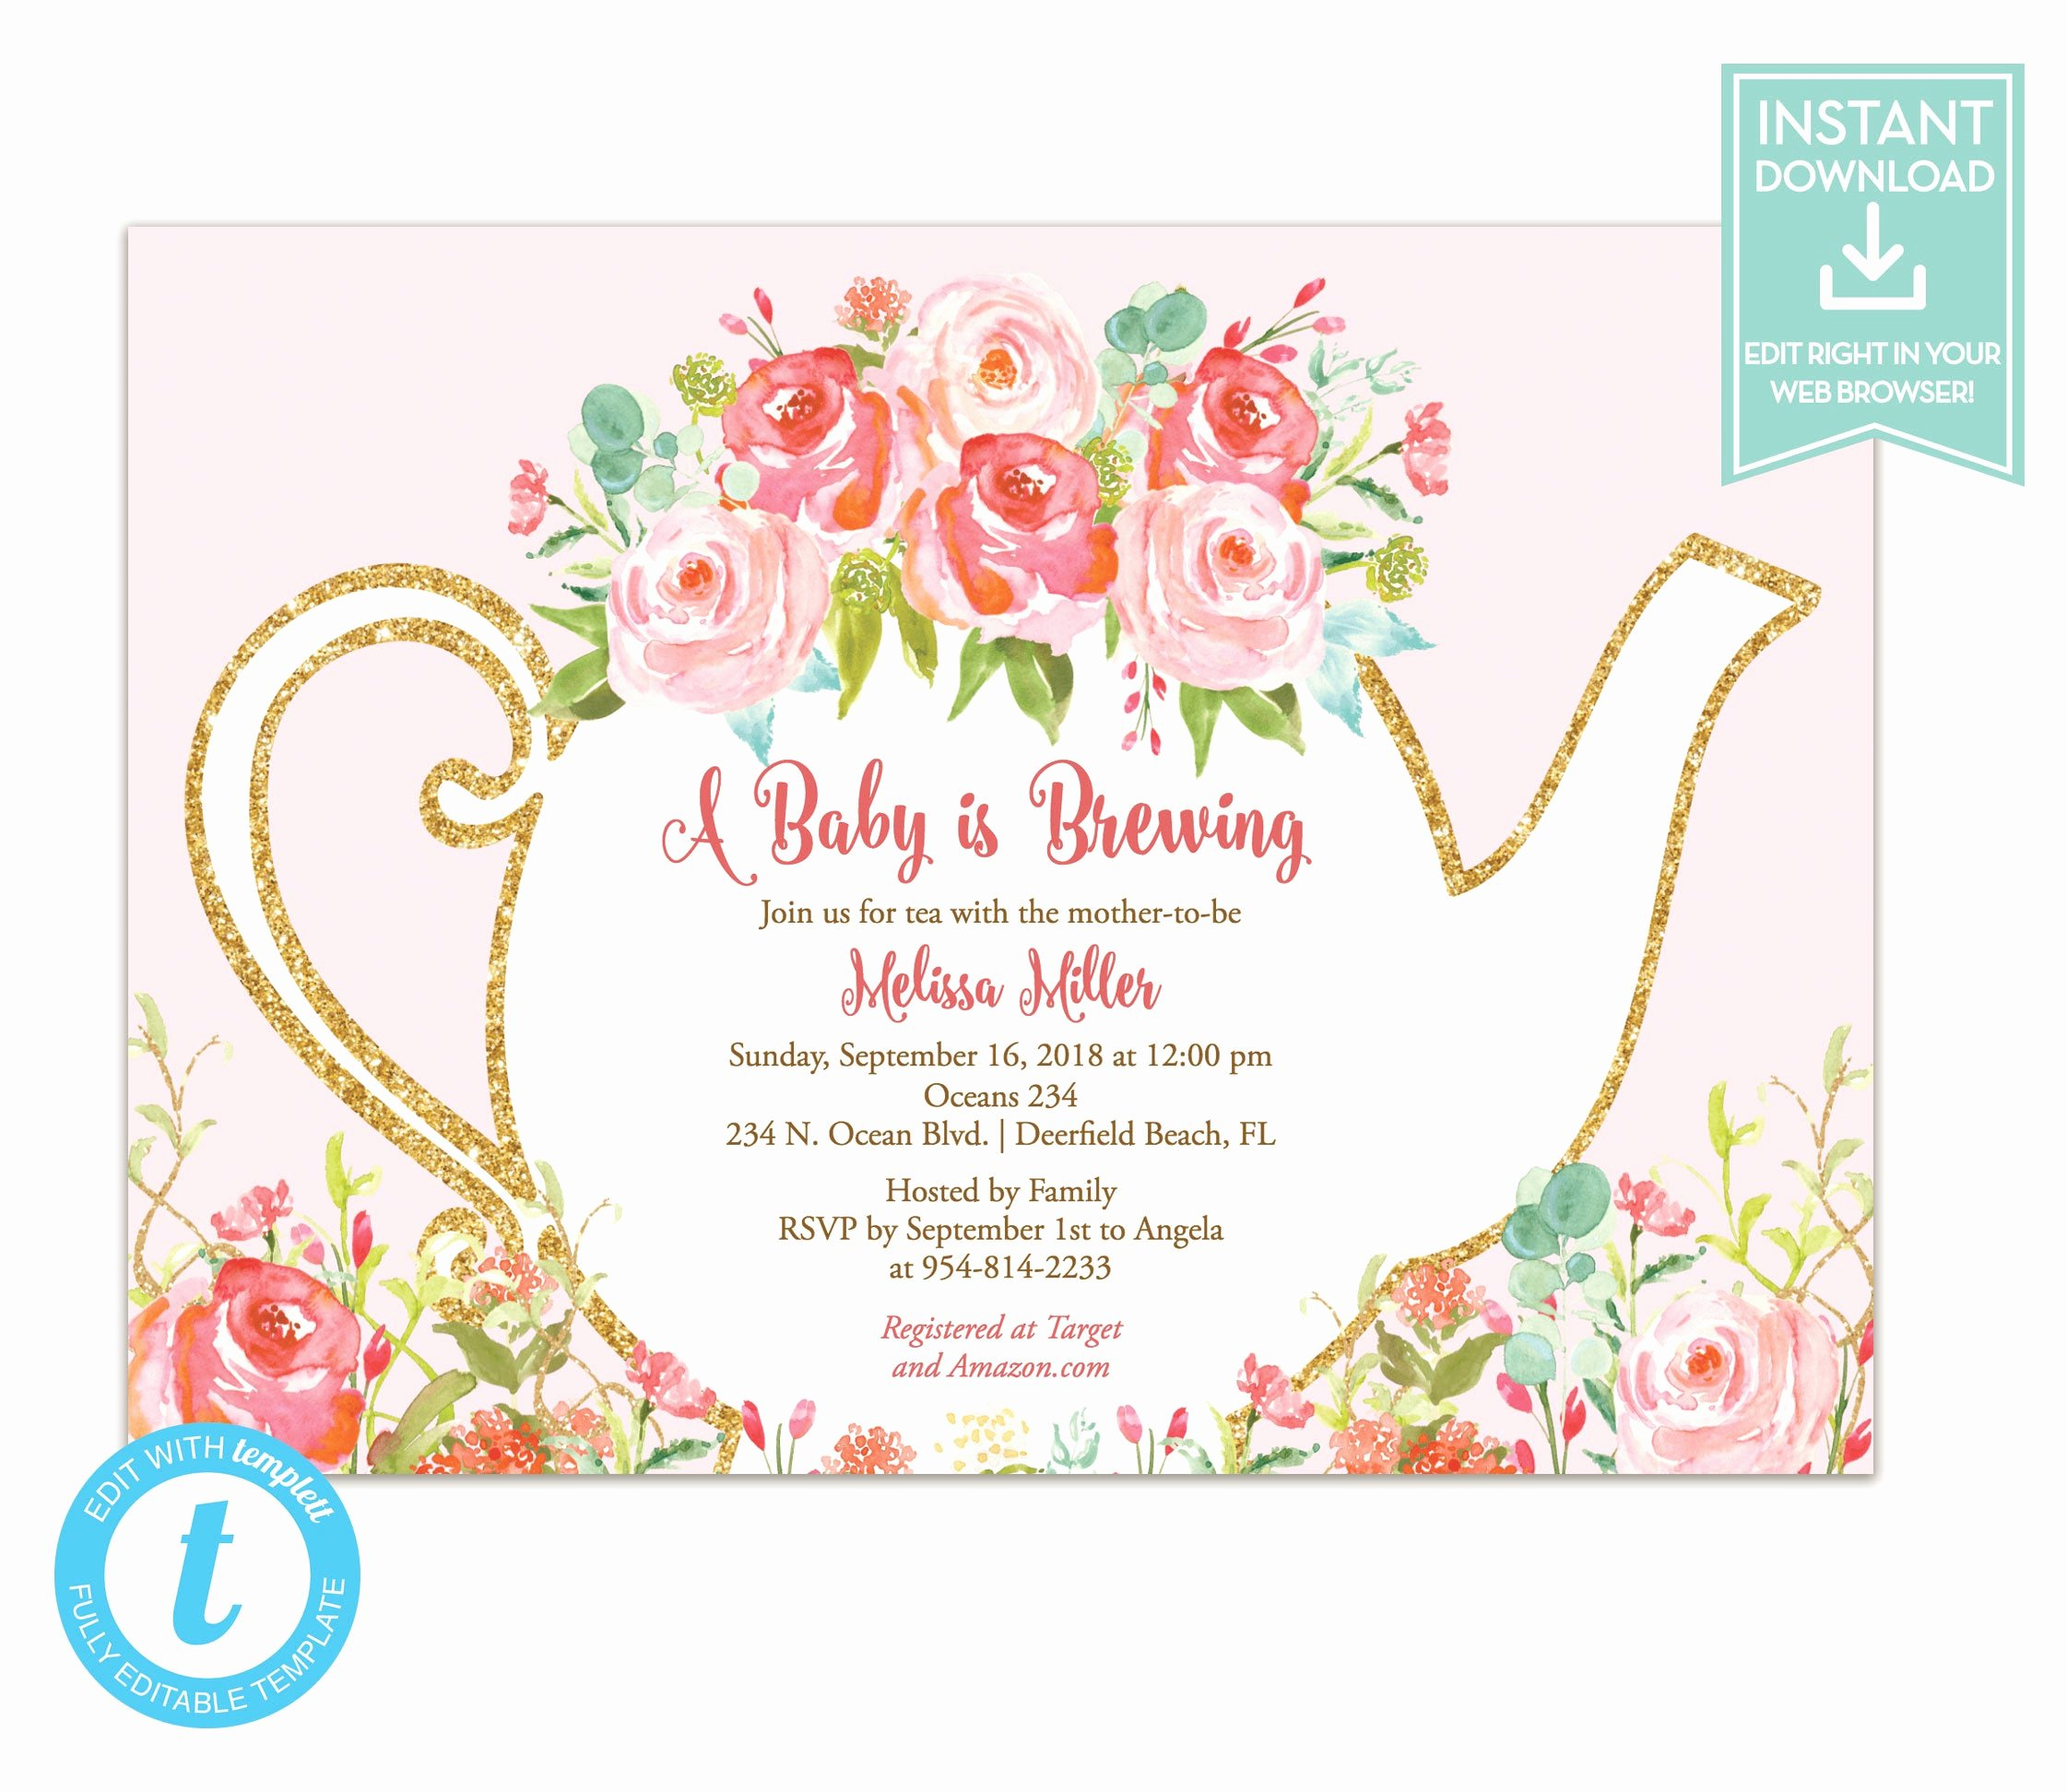 Tea Party Invitation Template Inspirational Tea Party Invitation Template Floral Teapot Bridal Shower